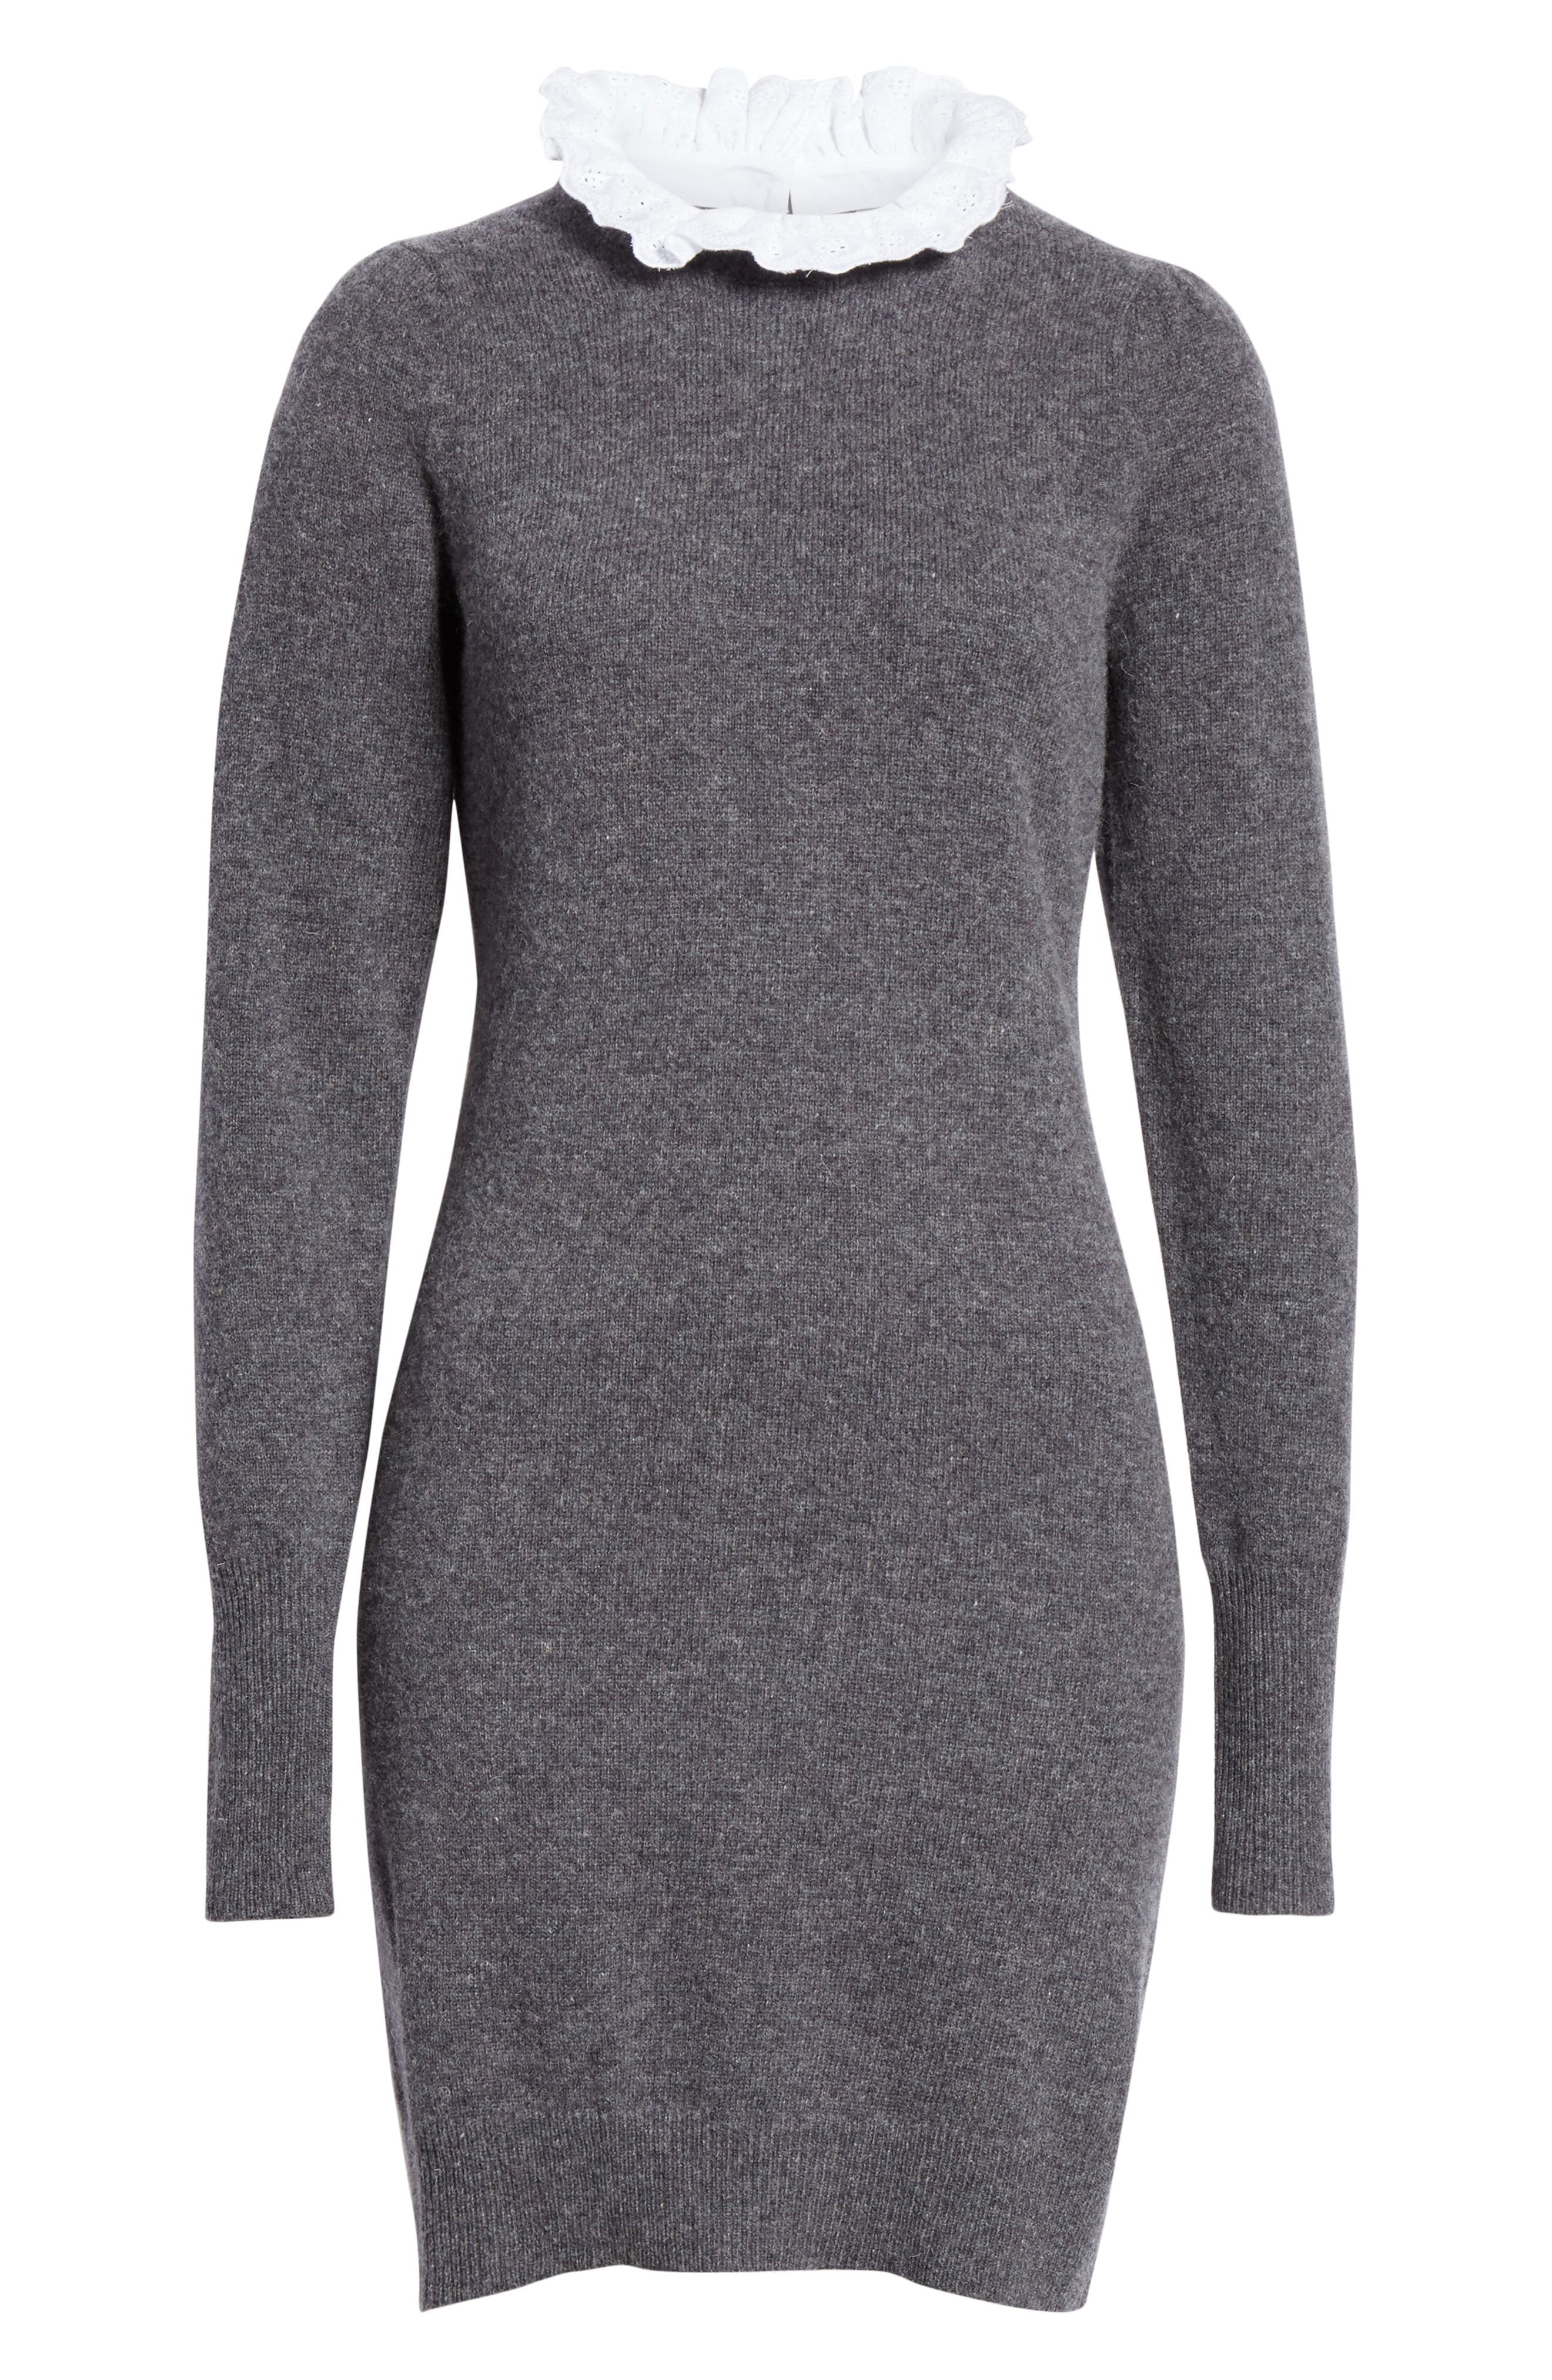 Ancolie Eyelet Collar Sweater Dress,                             Alternate thumbnail 6, color,                             020